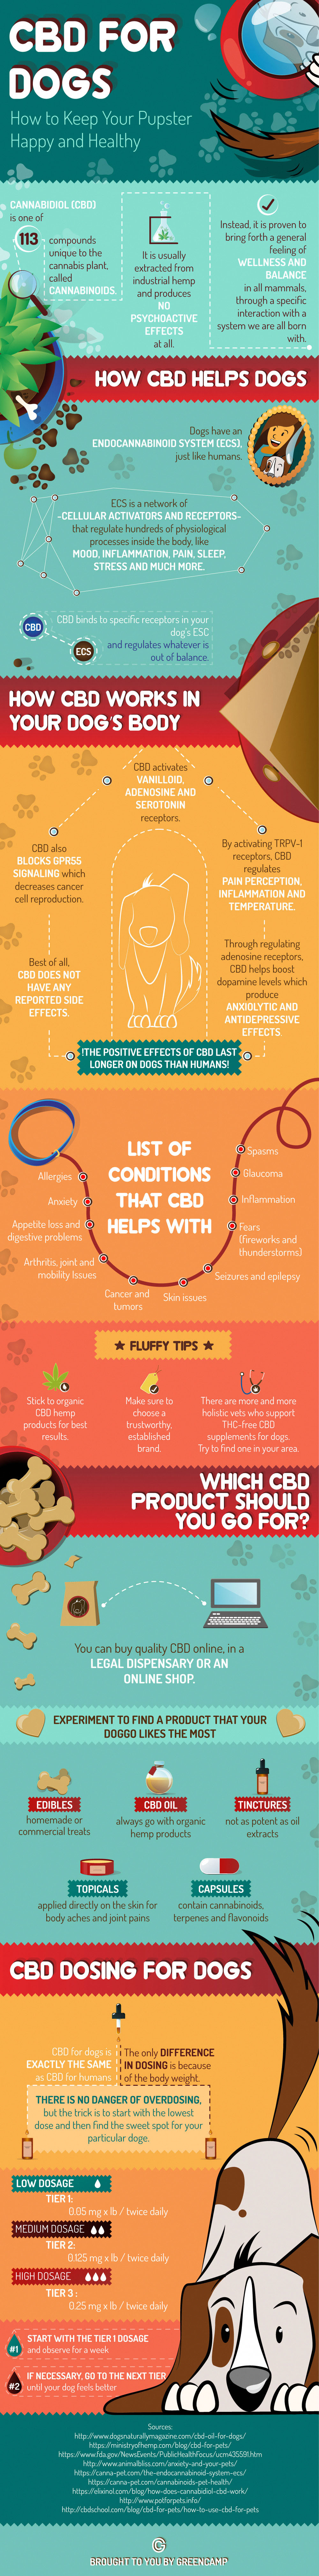 Why Some Forms of Cannabis Can Be Good for Dogs - Infographic